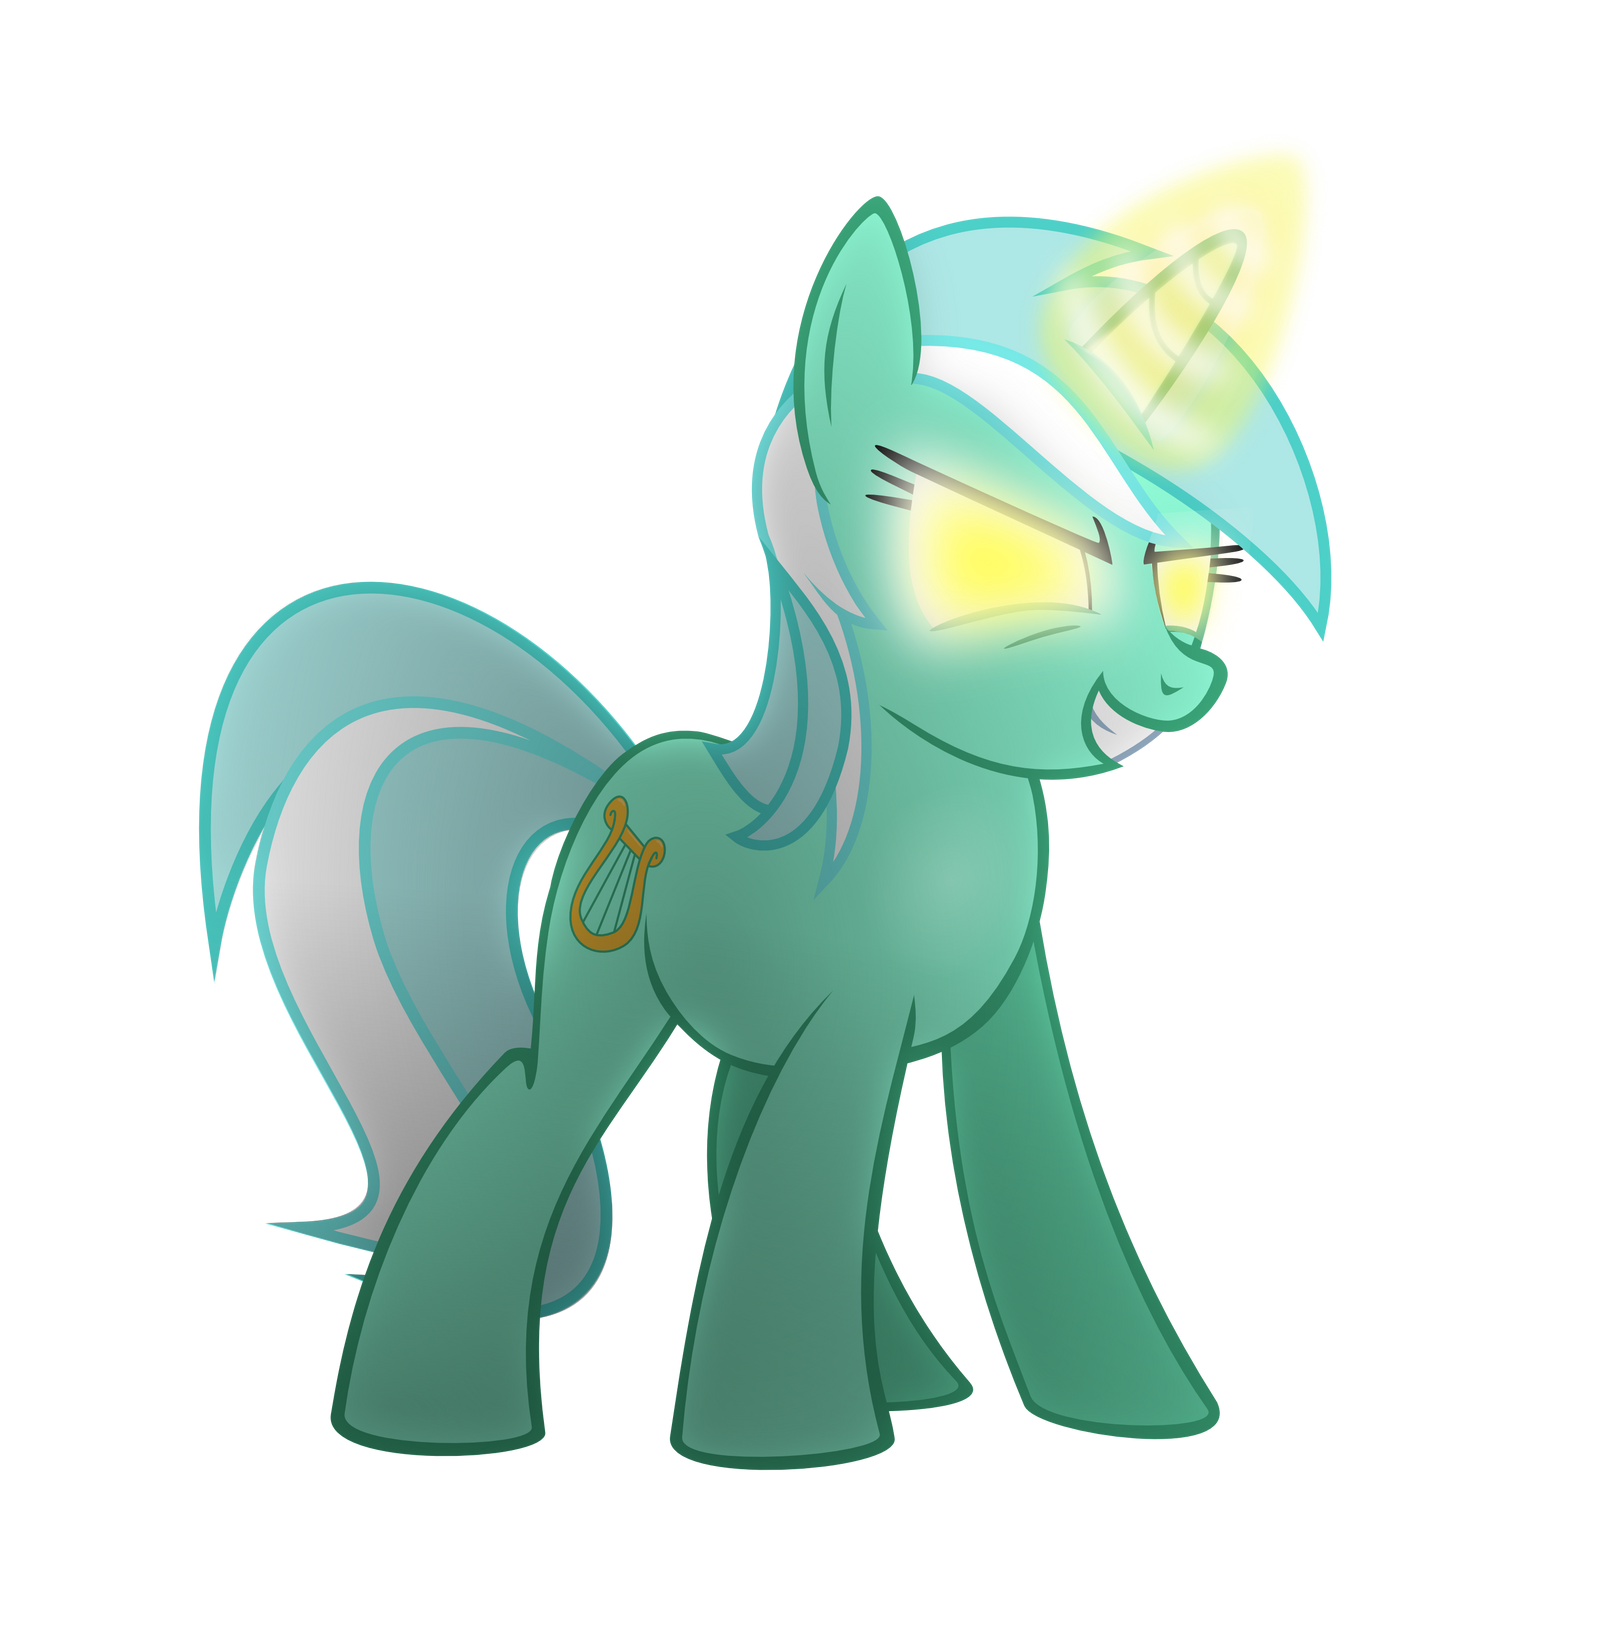 Lyra is a bit upset by The-Smiling-Pony